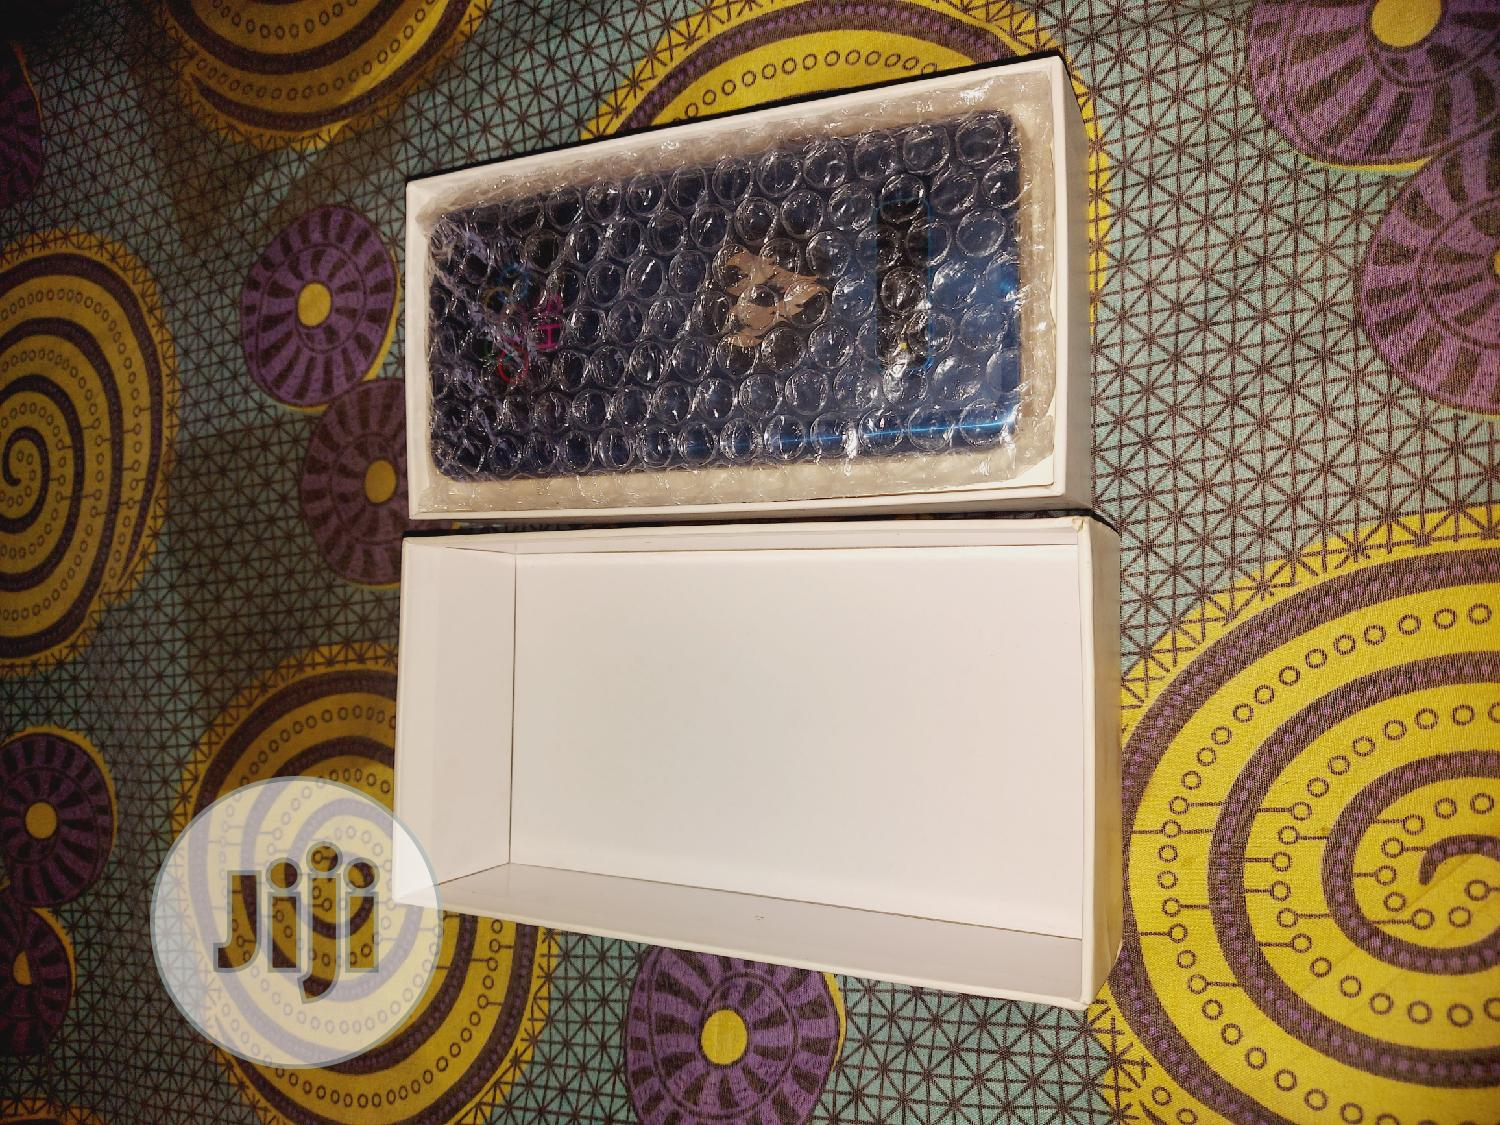 New Mobile Phone 16 GB Blue | Mobile Phones for sale in Owerri, Imo State, Nigeria